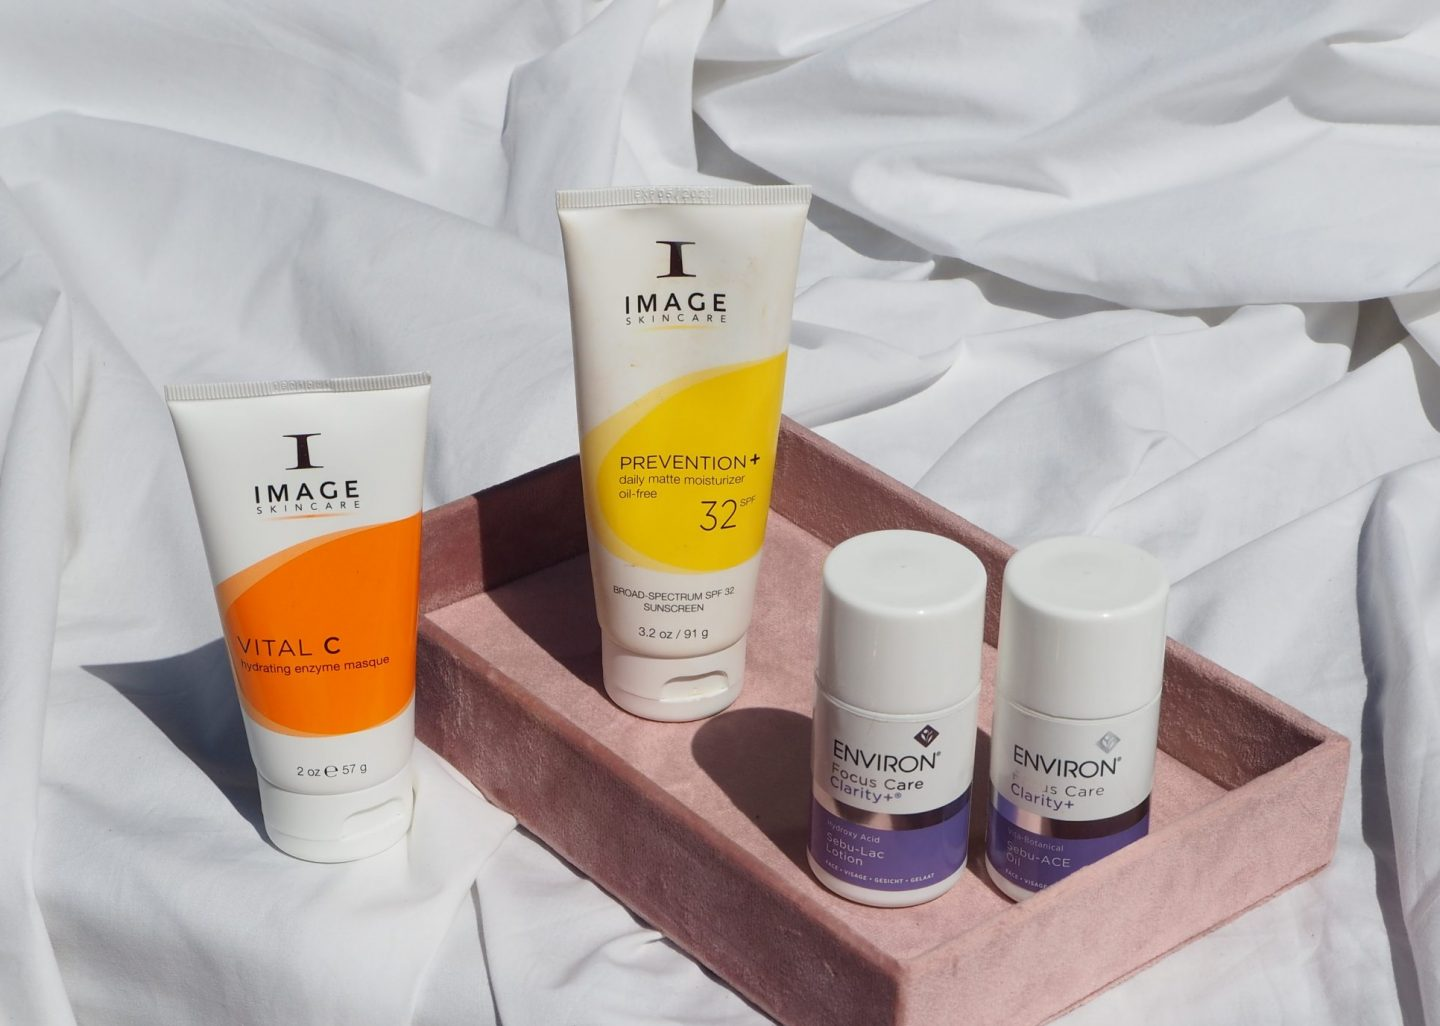 Products for Adult Acne